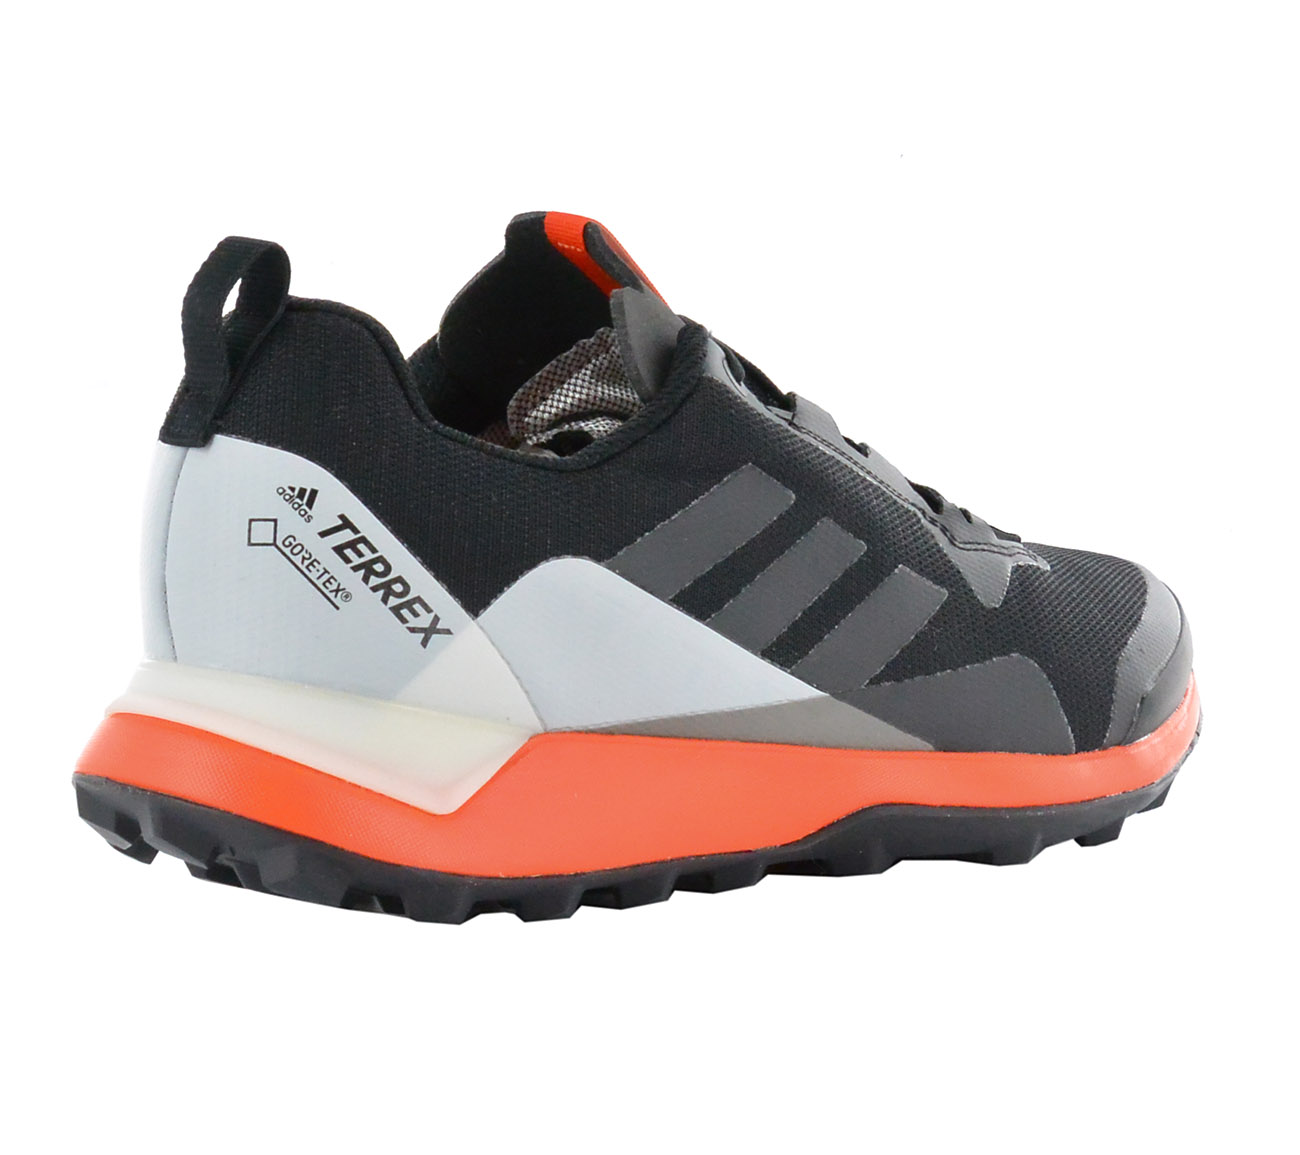 499613adc67 Adidas Terrex Cmtk GTX Gore-Tex Shoes Black Men s Hiking Shoes Trail ...